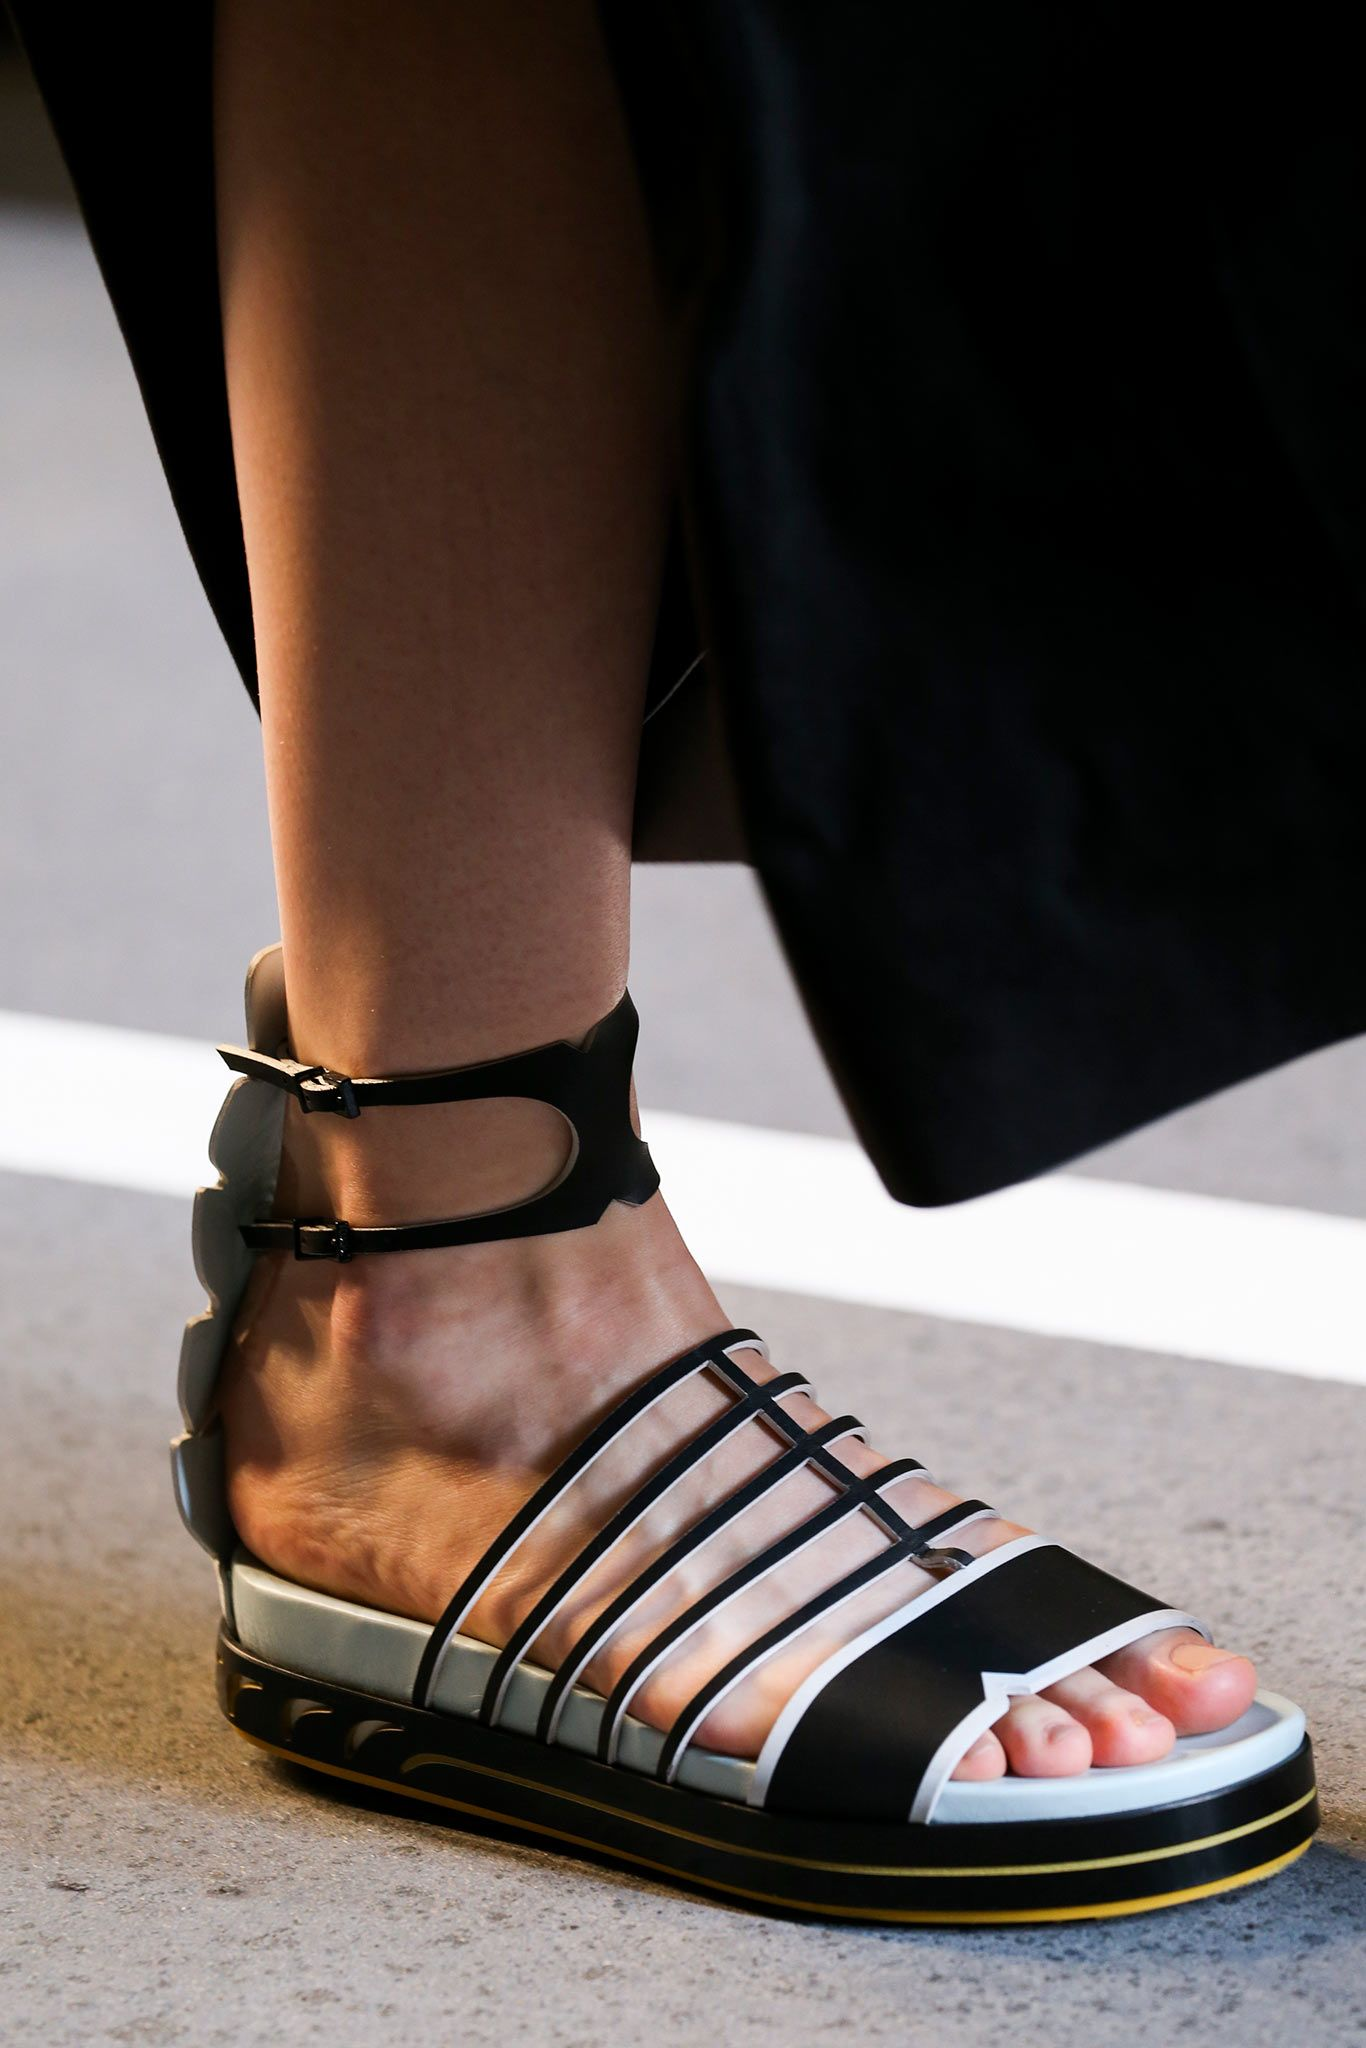 Chaussures - Sandales Post Orteils Thakoon QF4tHTorZG